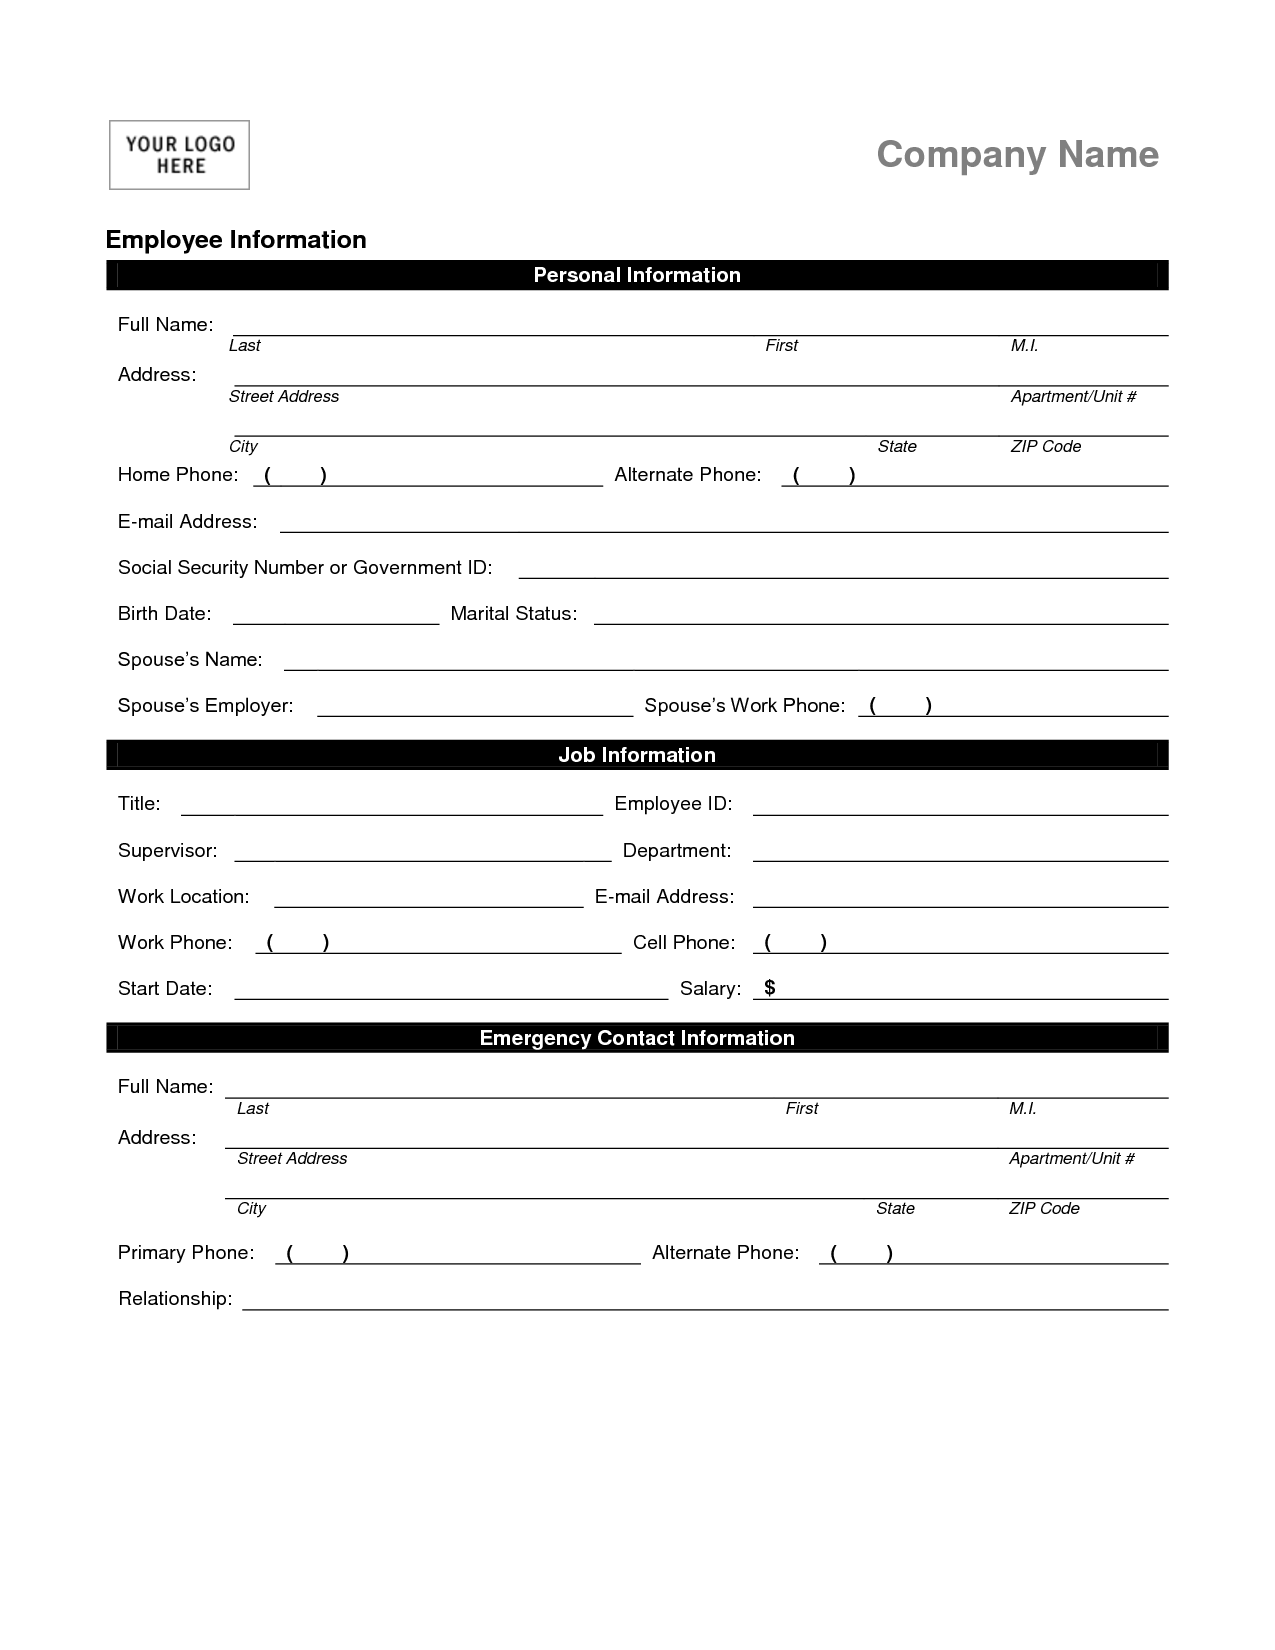 Elegant Employee Information Form Sample Employee Form. On Employee Information Form Sample